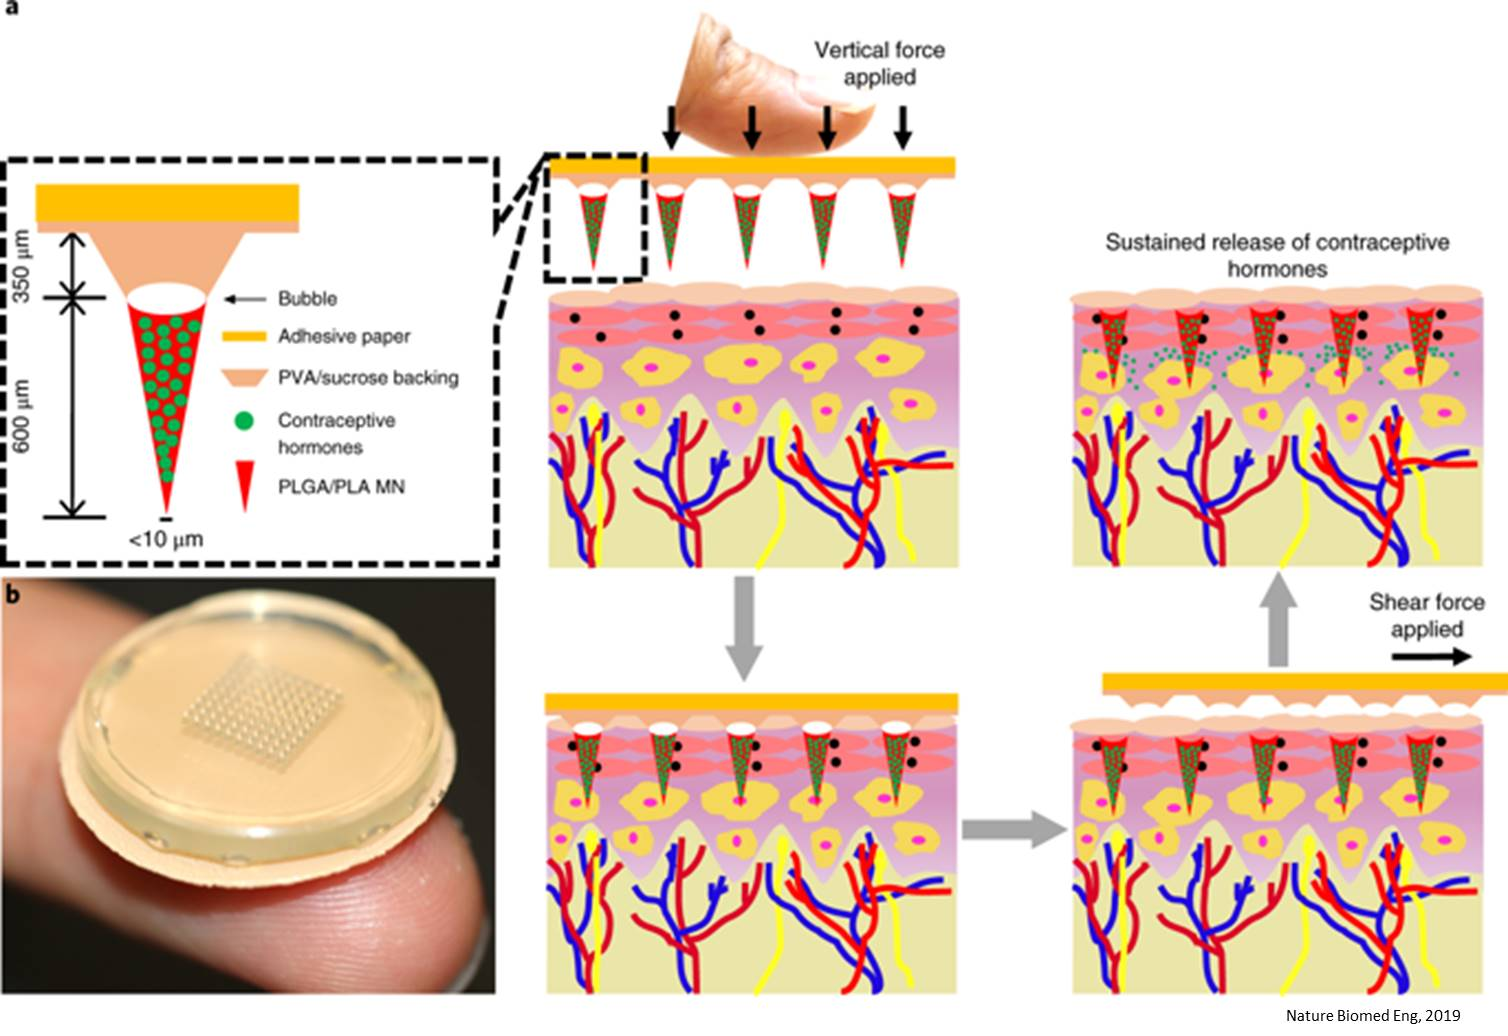 Microneedle, self administered contraceptive patch for the sustained release